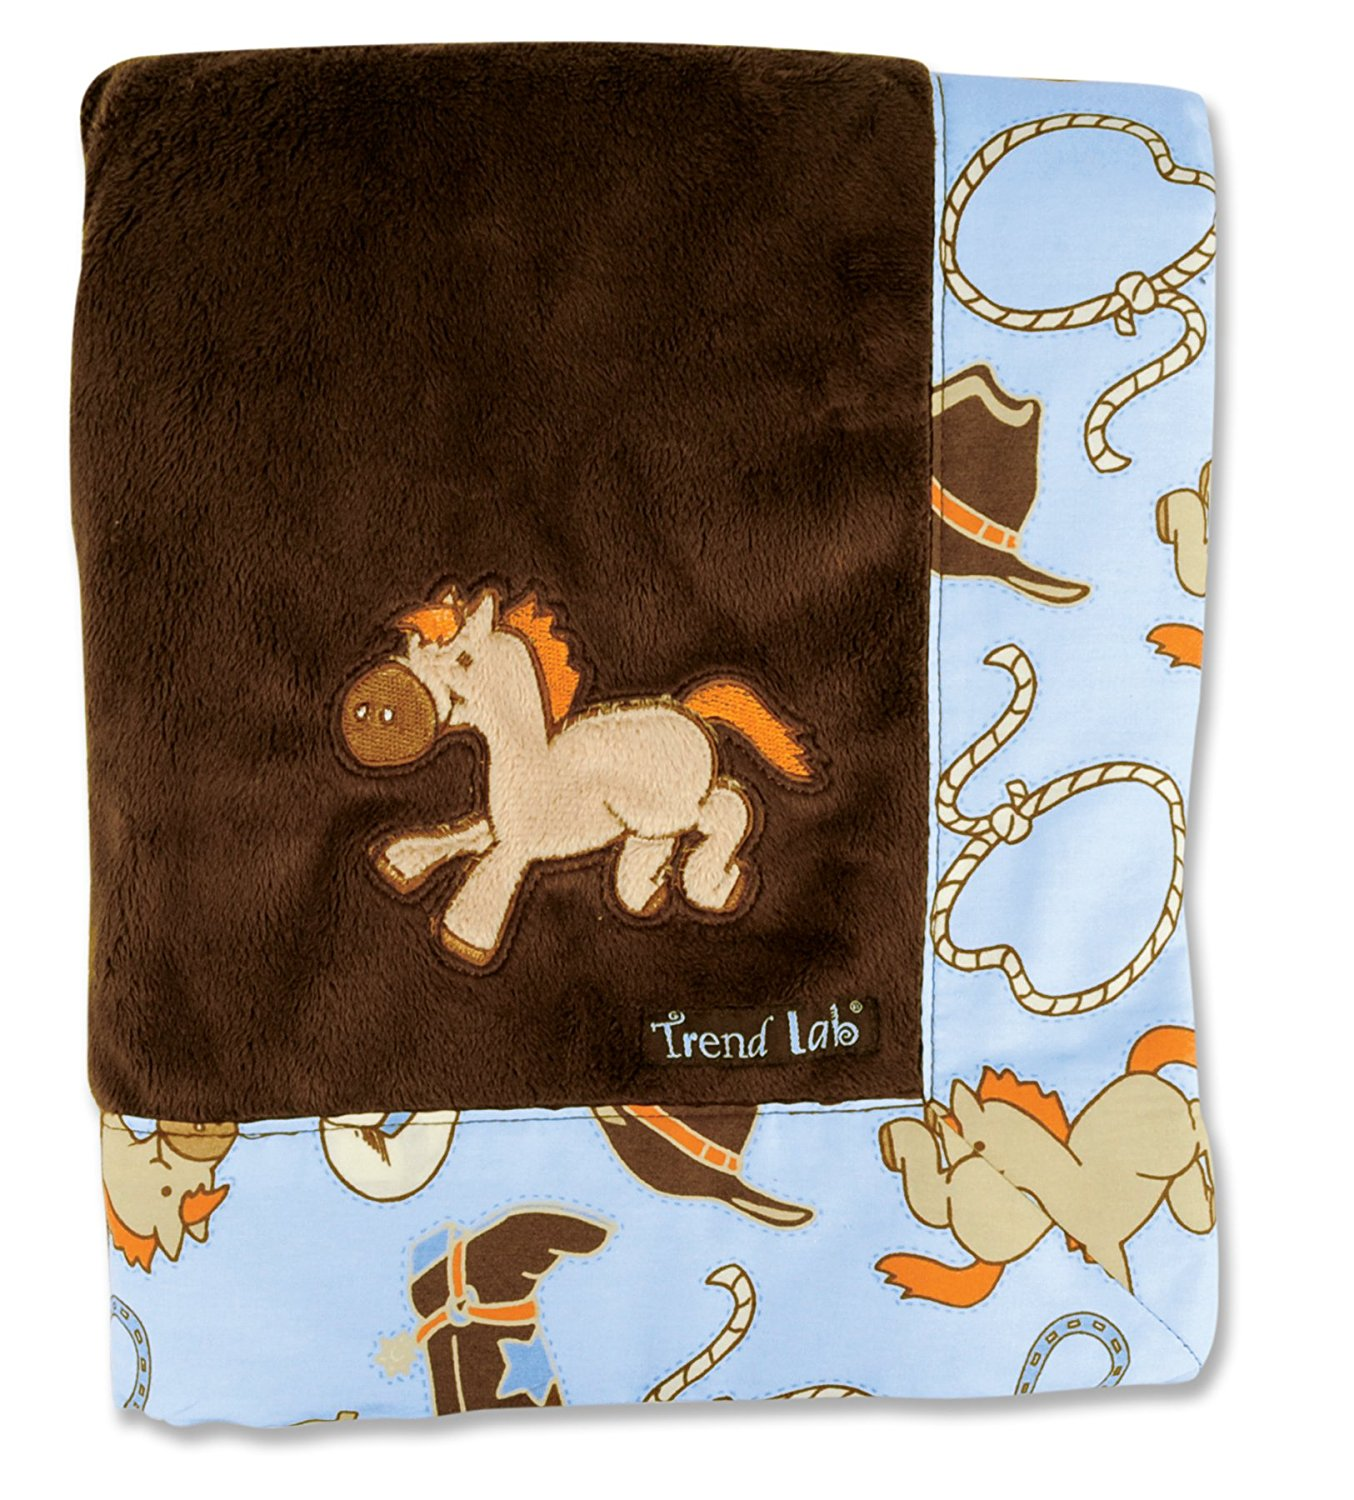 Groovy Love Receiving Blanket (Discontinued by Manufacturer), Cute, retro style receiving blanket for baby... by Trend Lab